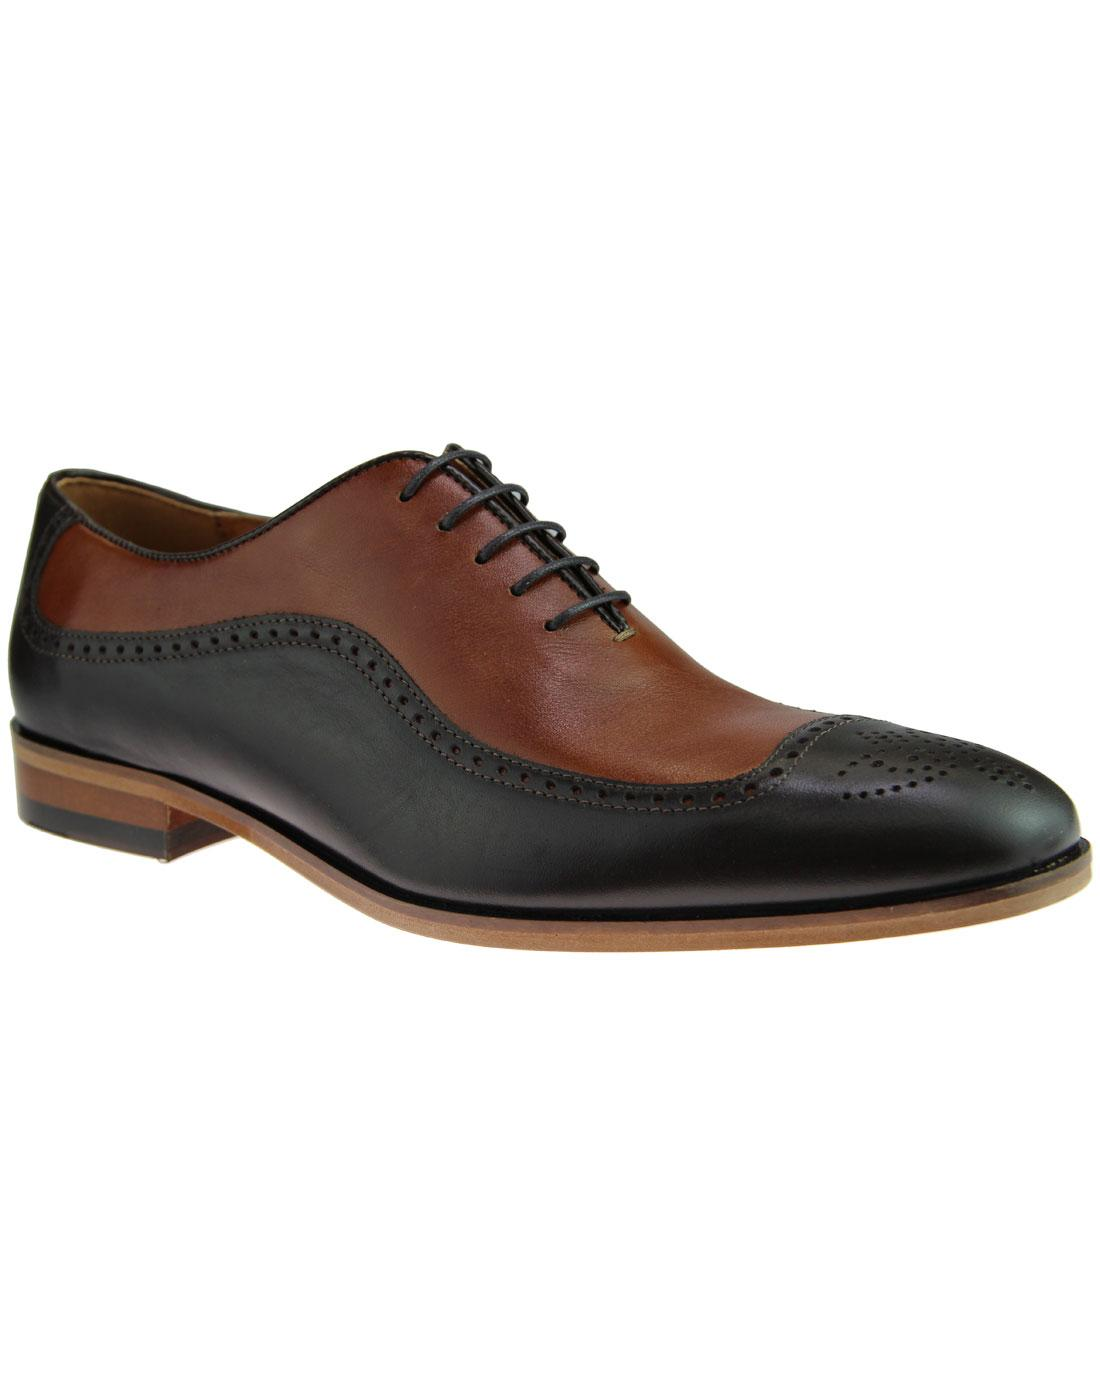 LACUZZO 1960s Mod Spatz Style Oxford Brogue Shoes